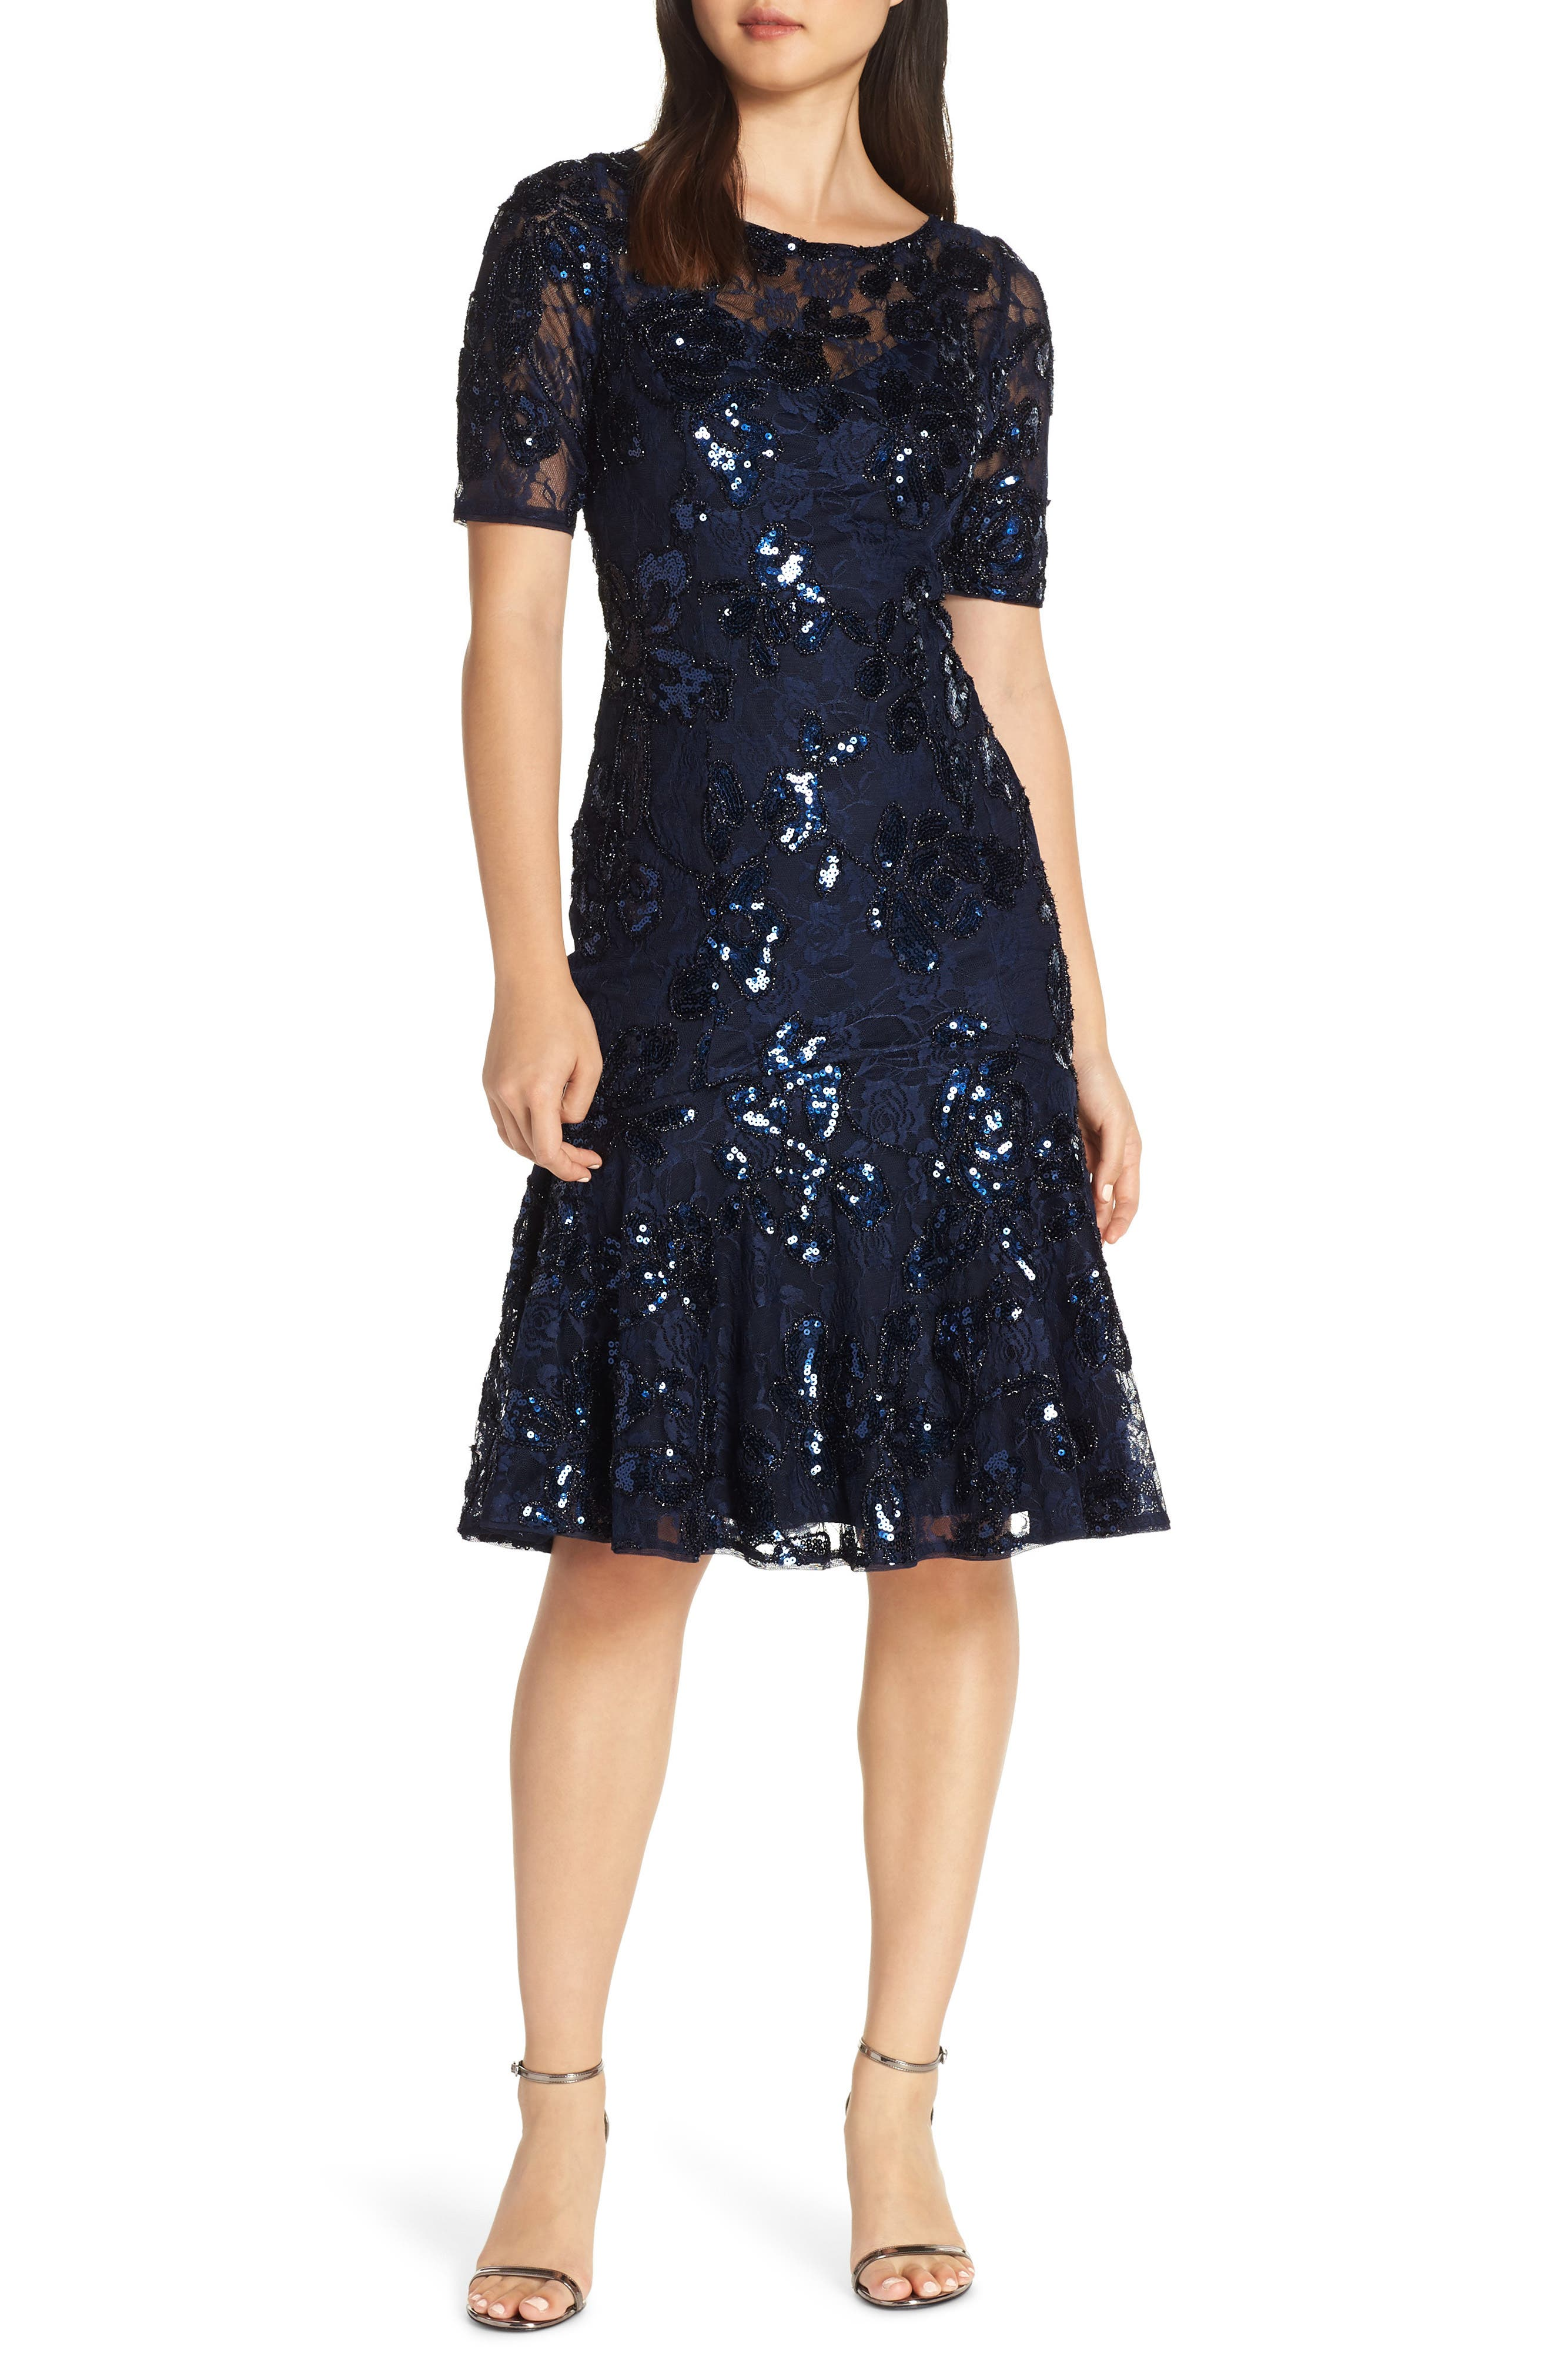 ADRIANNA PAPELL,                             Sequin Embellished Dress,                             Main thumbnail 1, color,                             410